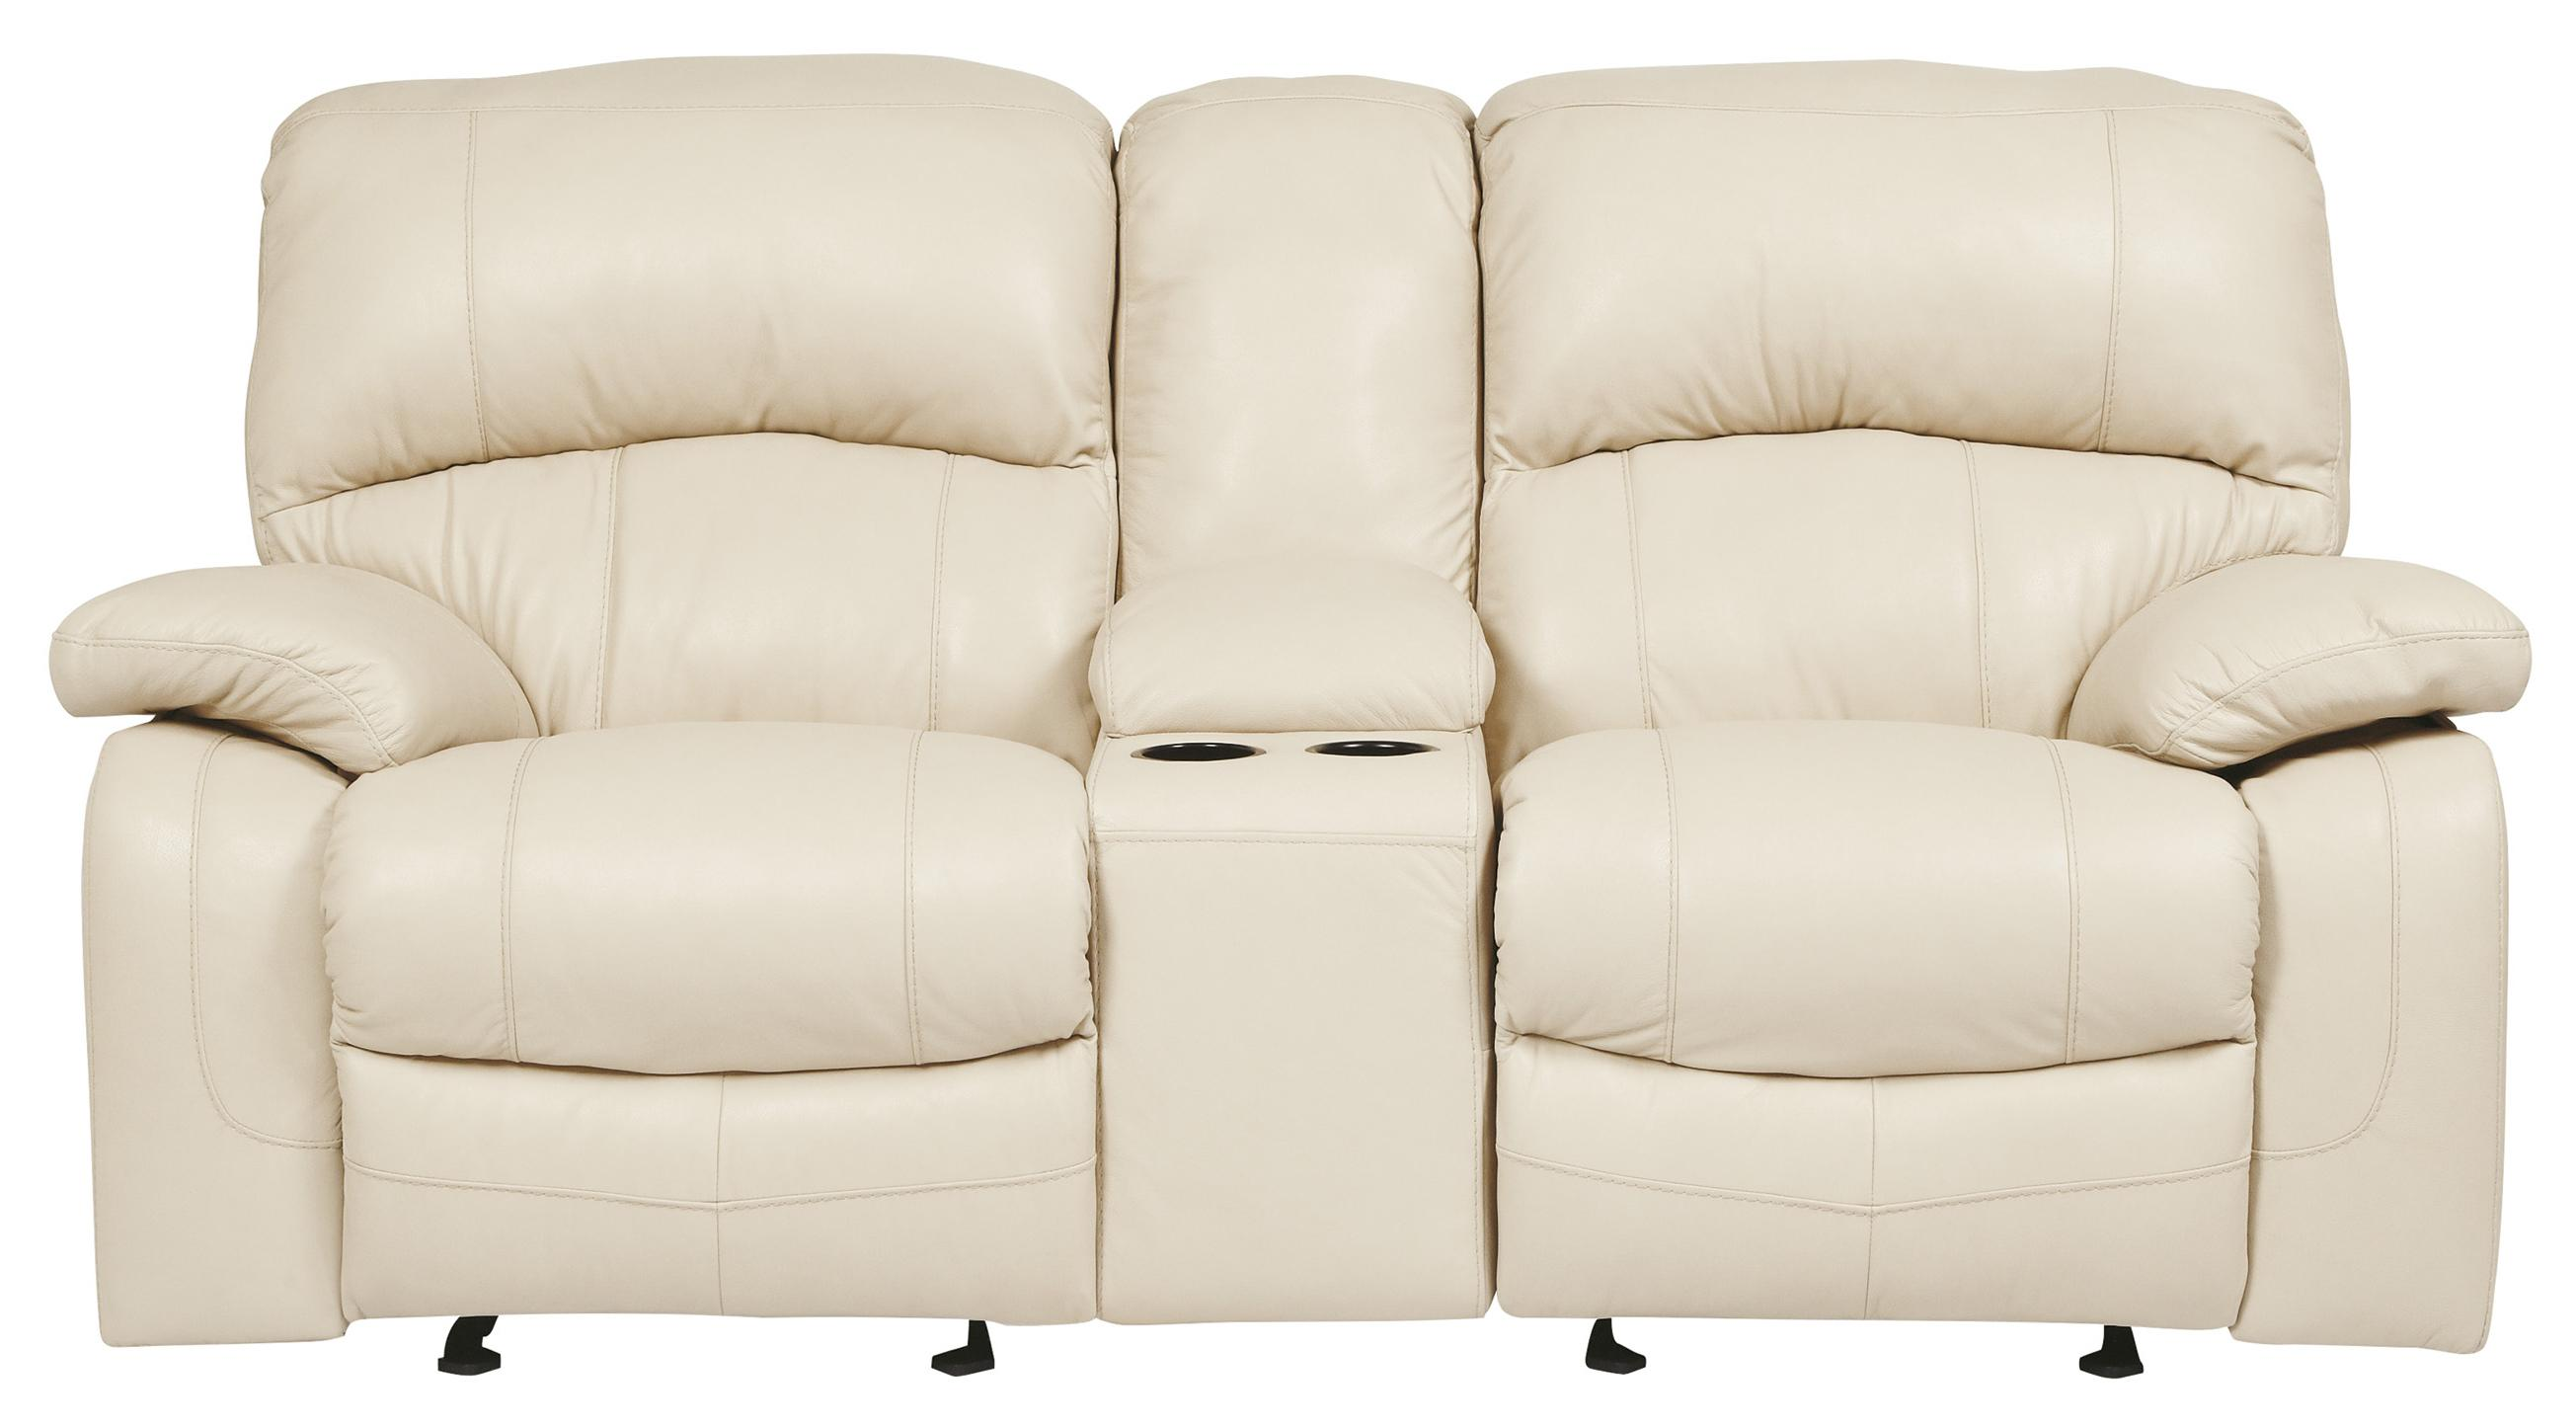 Signature Design by Ashley Darcy Glider Recliner Loveseat w/ Console - Item Number: U9820143